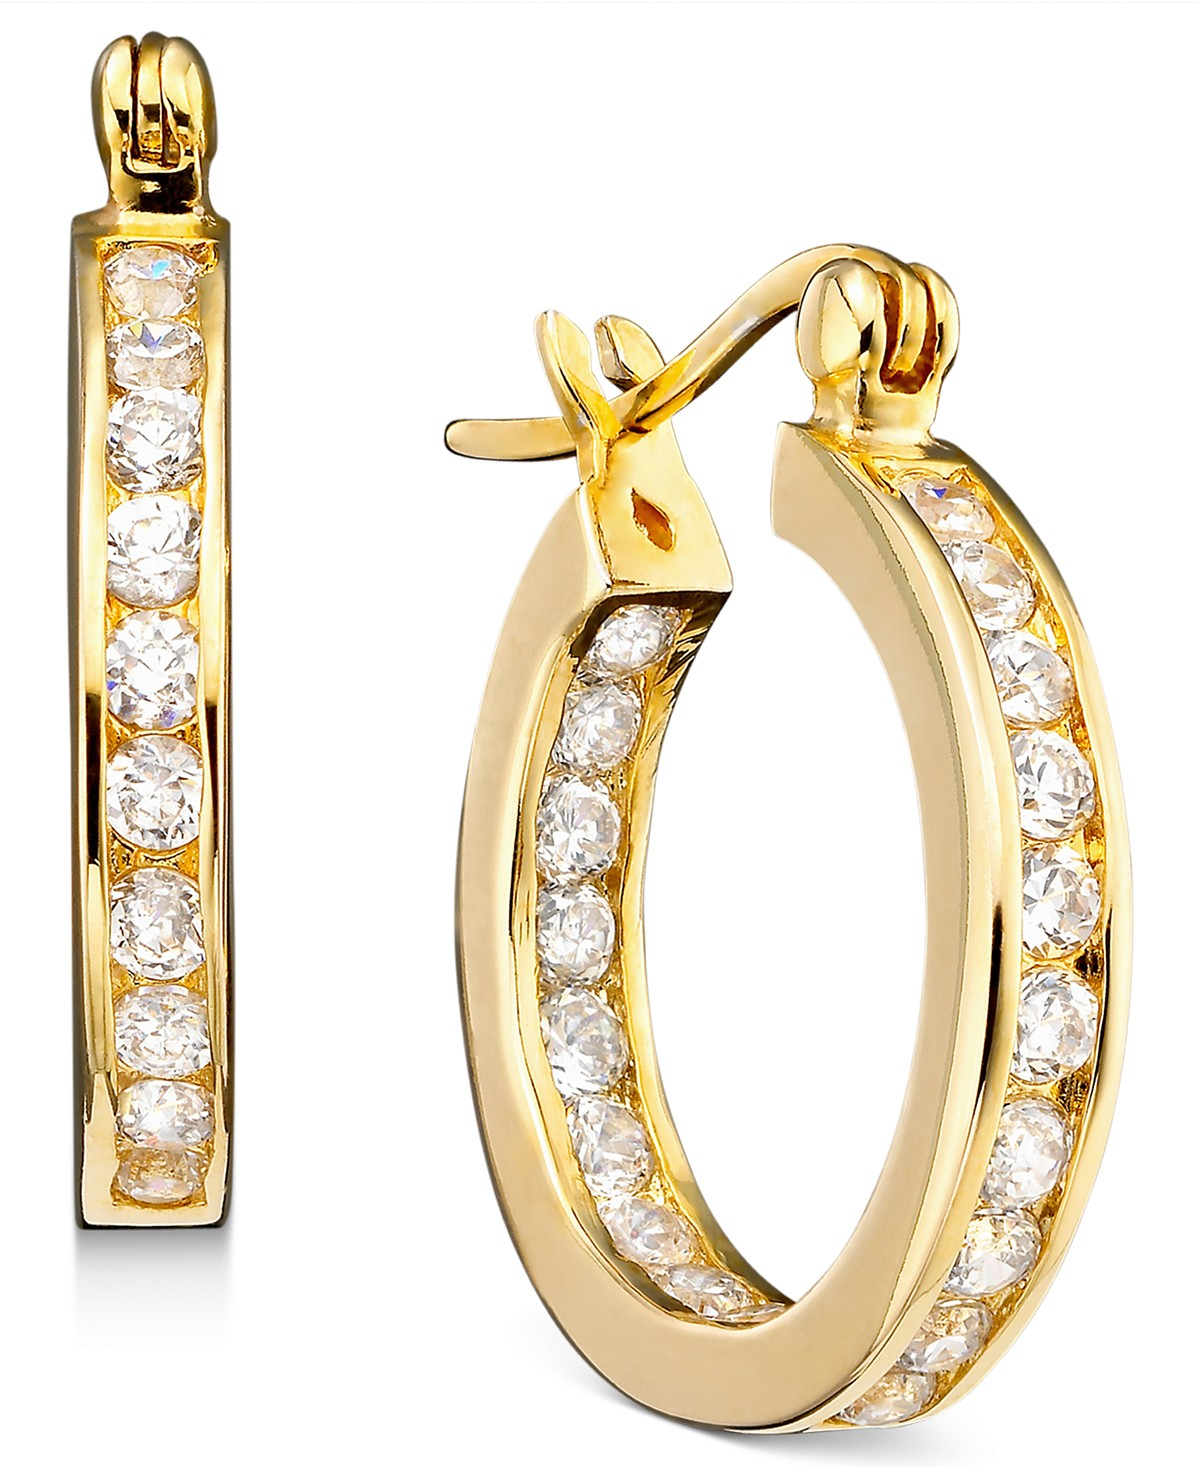 b13b54e0b Macy's: Giani Bernini Cubic Zirconia Inside Out Hoop Earrings in 18k for  $14.99 (Reg $89) + store pickup.